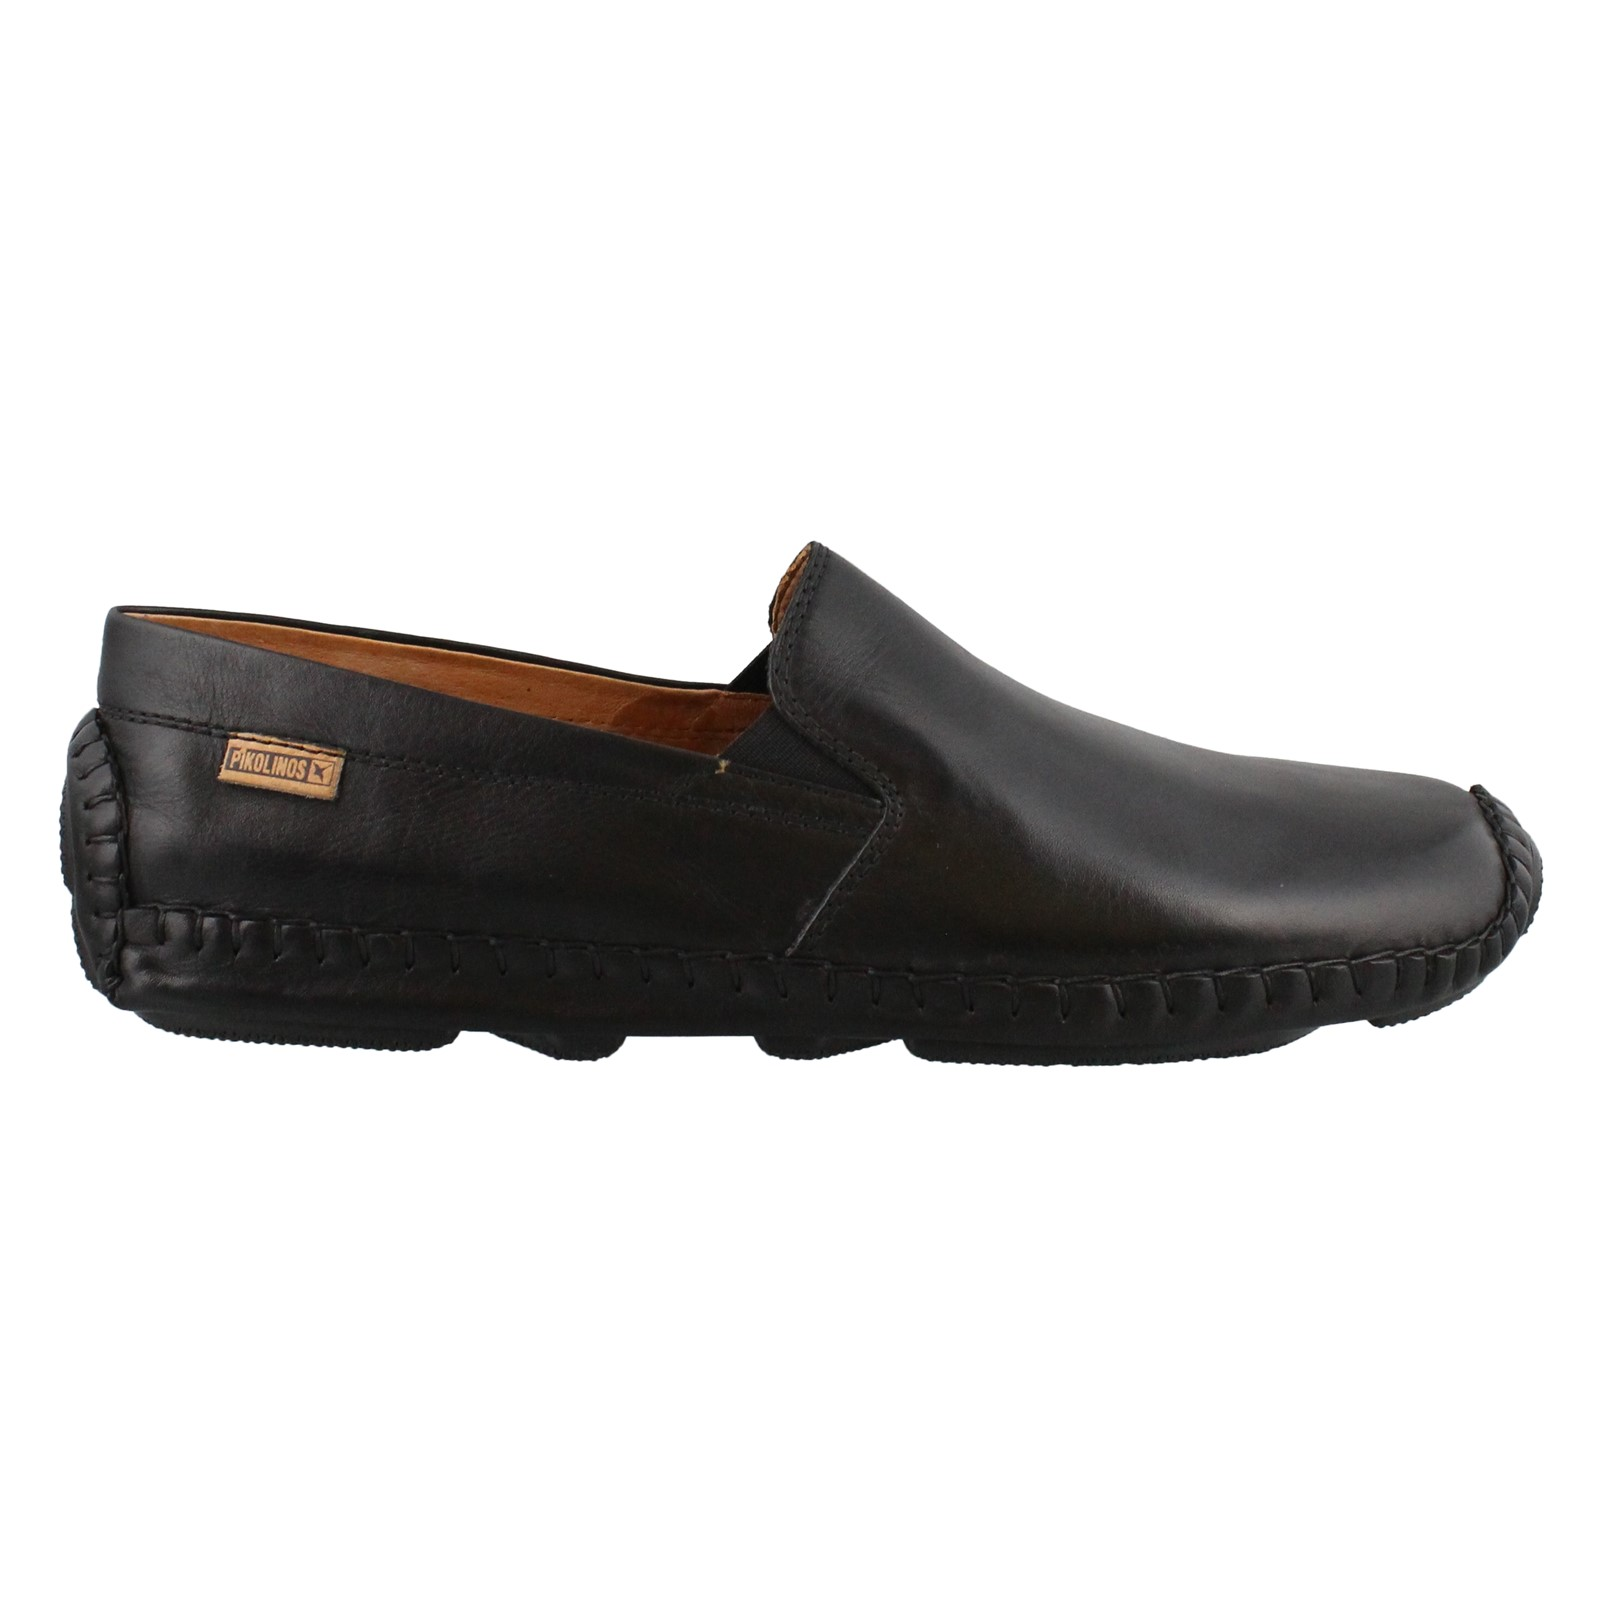 Men's Pikolino, Jerez 09Z5511 Slip on Drivers